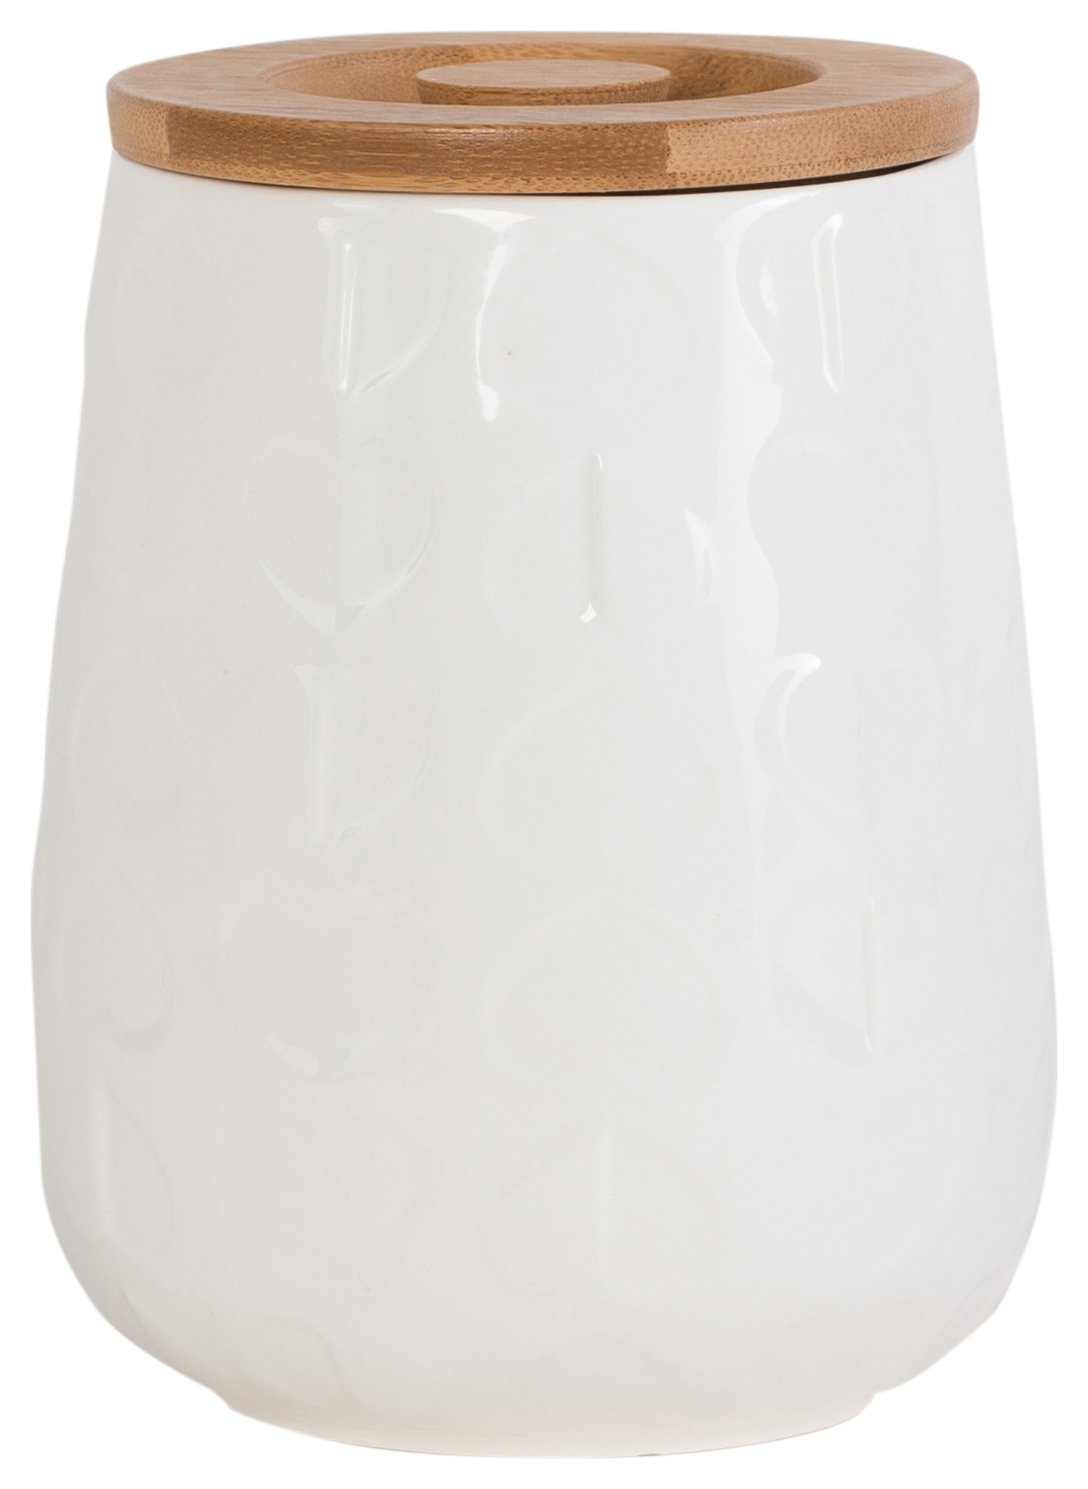 Image of Beau and Elliot Confetti - White Storage Jar